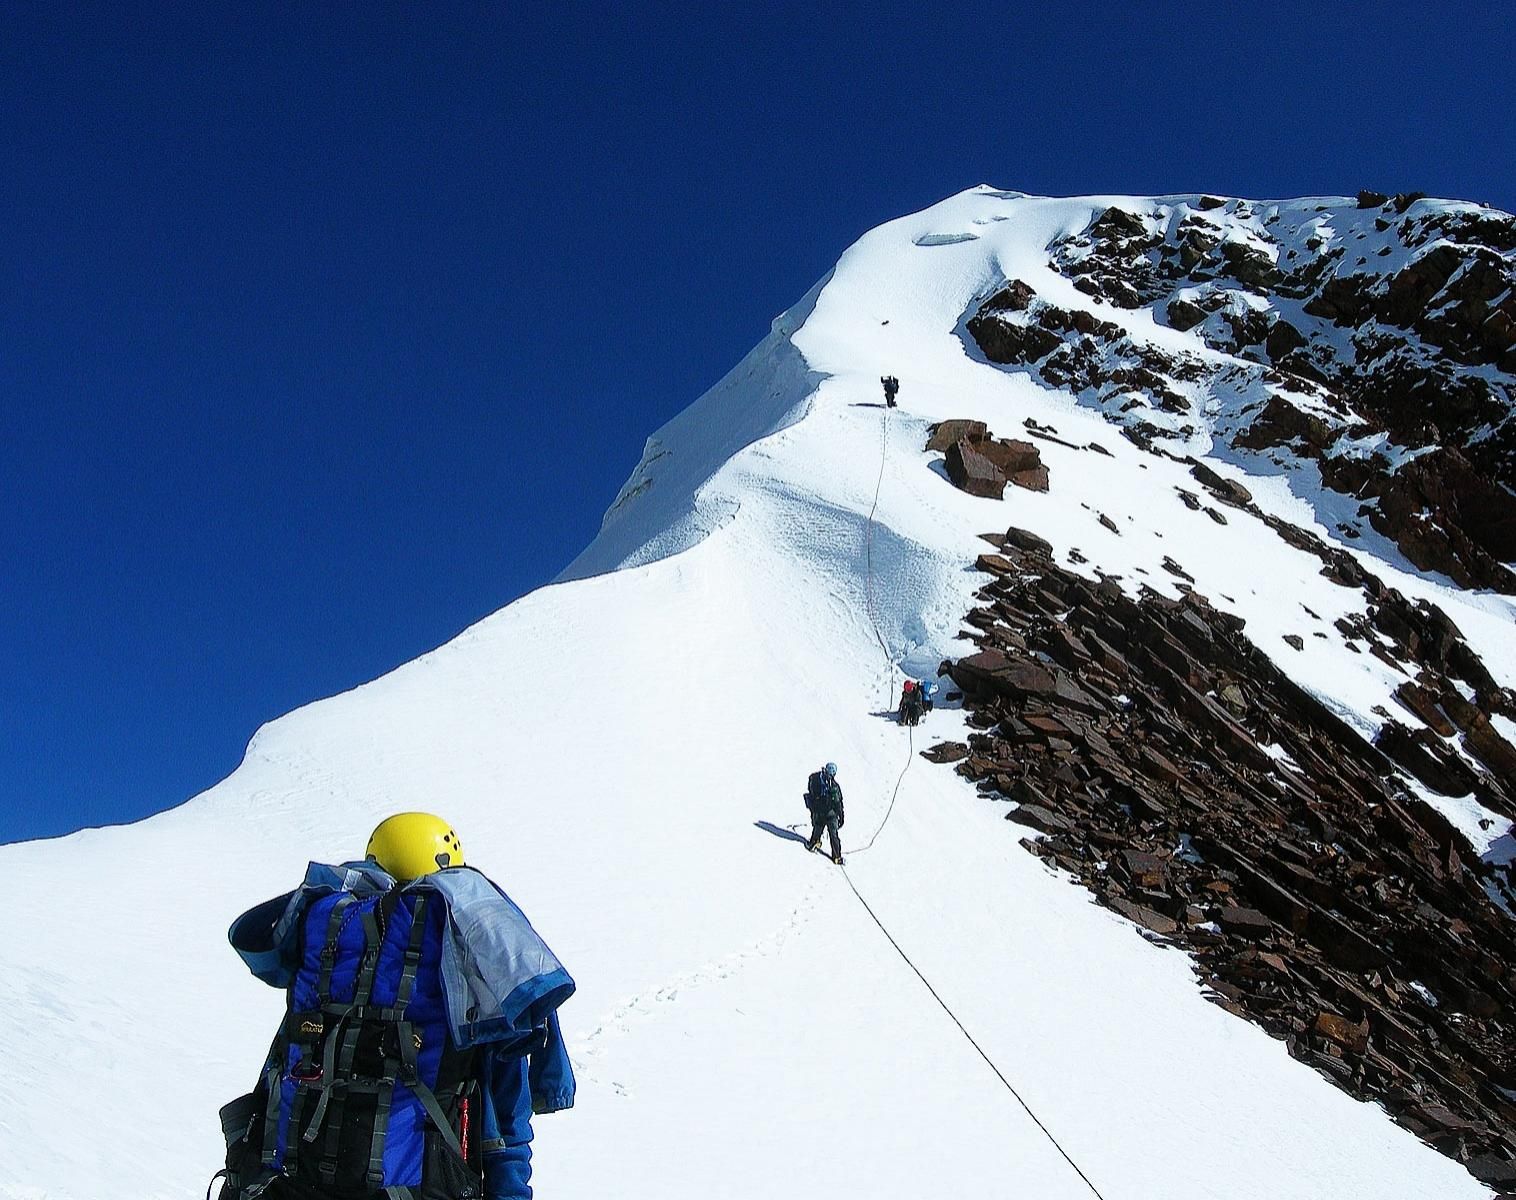 Bolivie  Camp de haute montagne   Alpinisme